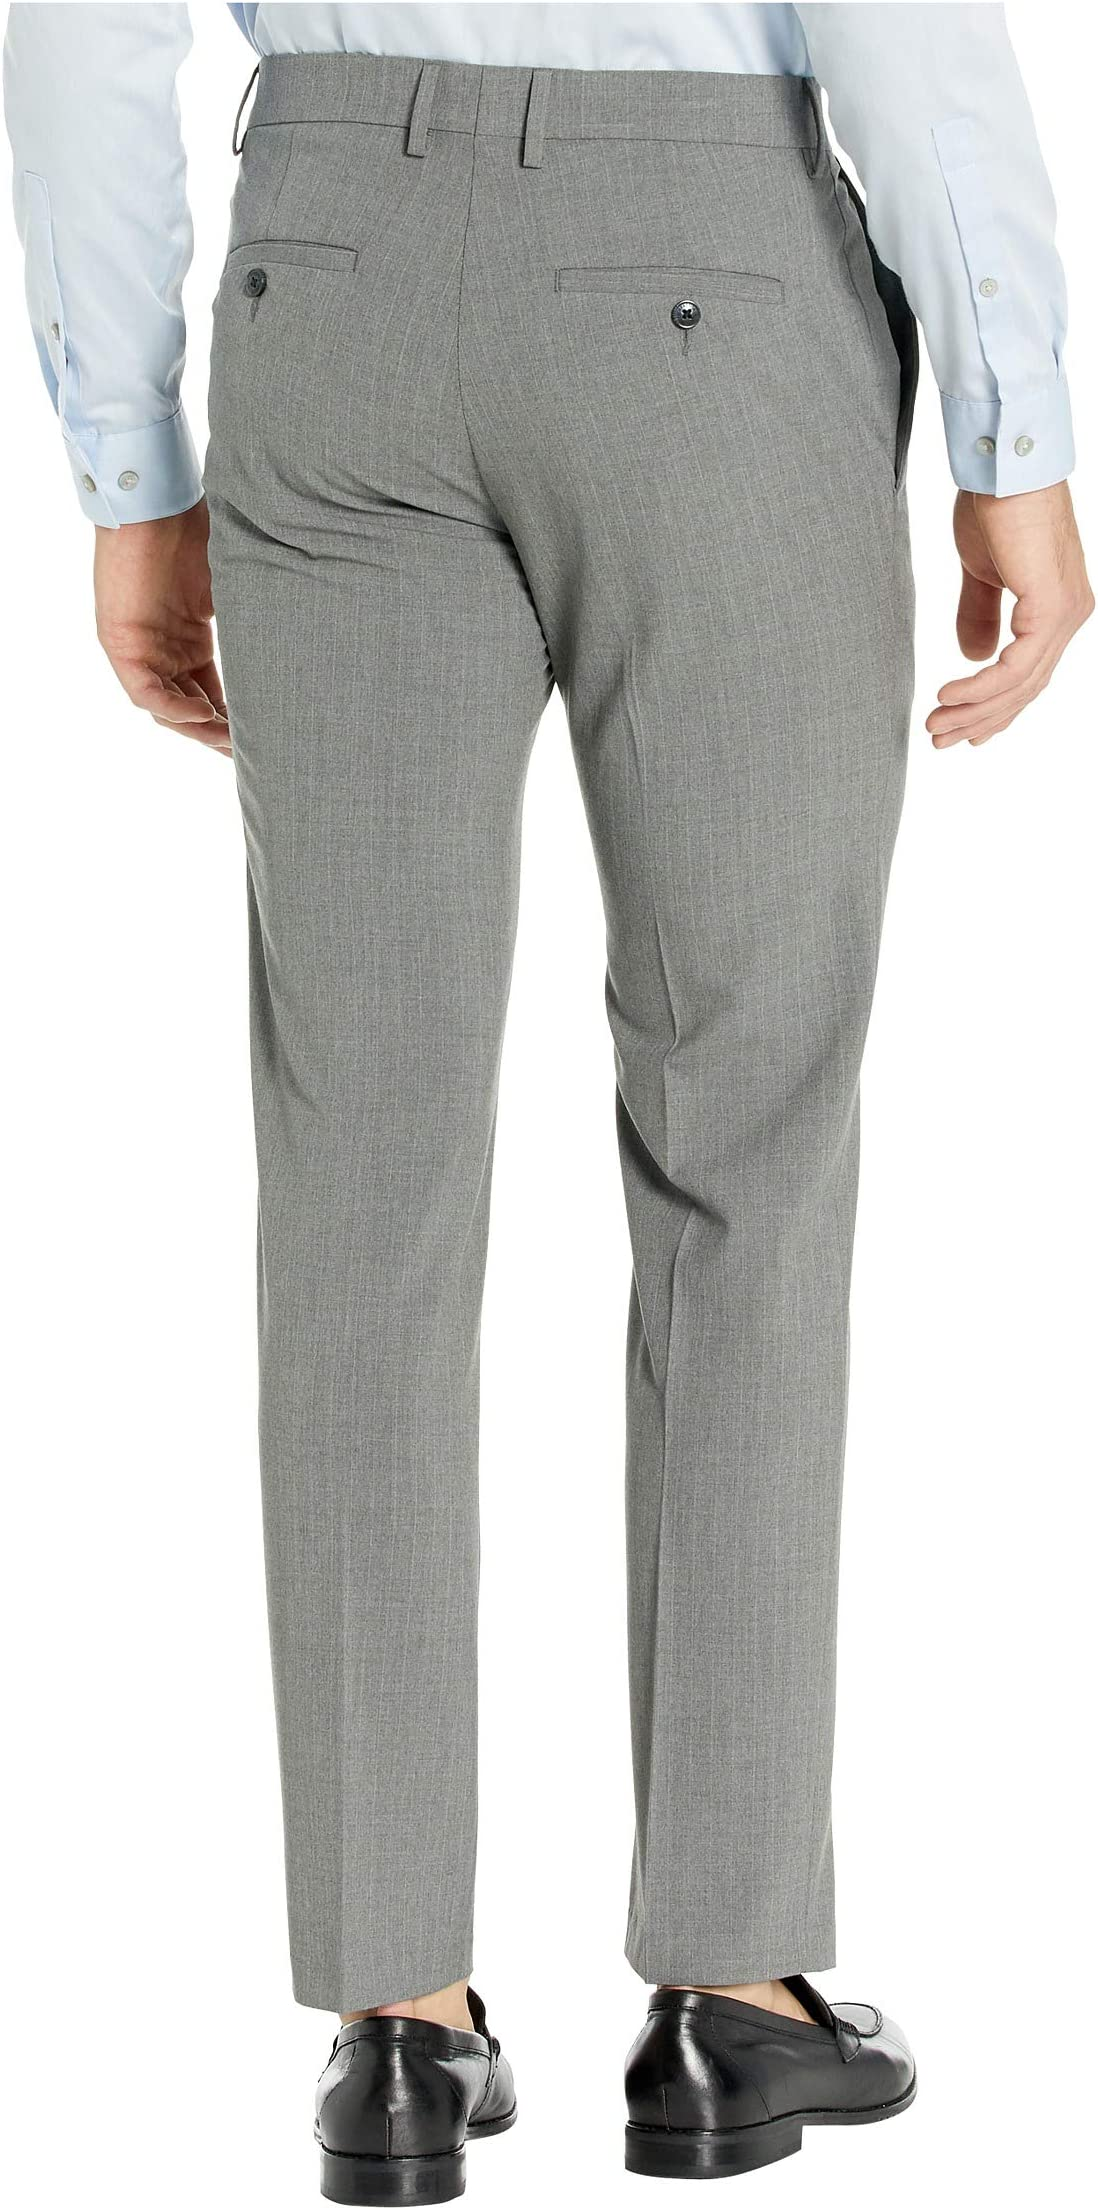 Kenneth Cole Reaction Stretch Pinstripe Slim Fit Flat Front Dress Pants litDK